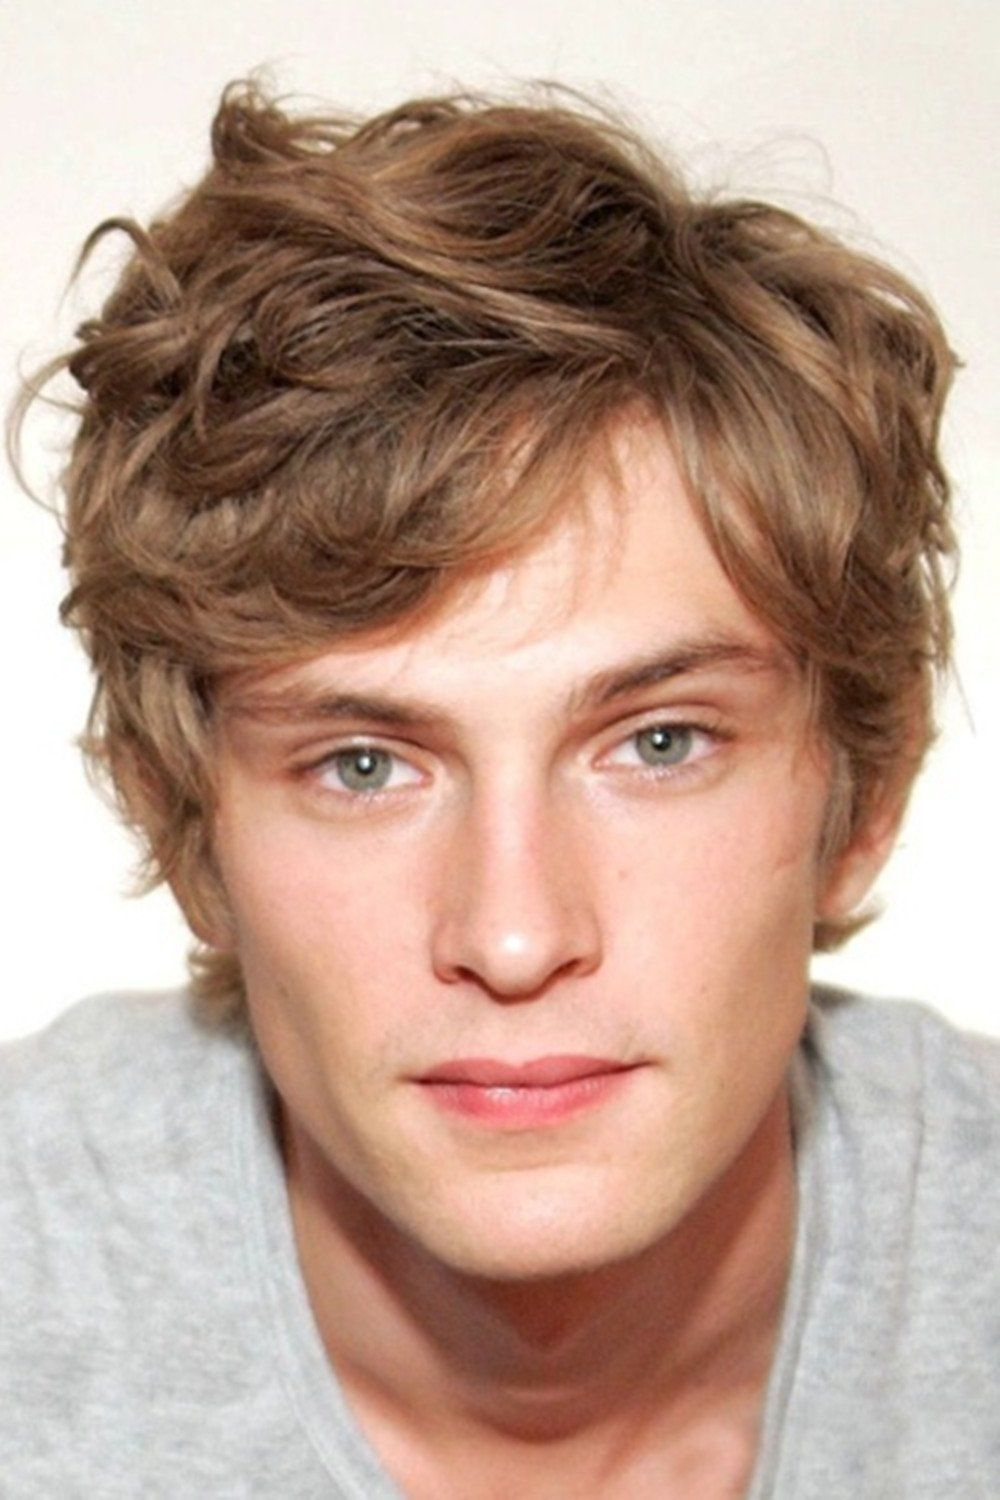 35e2860b1 B-G Men Wigs Short Curly Synthetic Heat Resistant Hair Wig for Man with Wig  Cap (Blonde) UW009: Amazon.co.uk: Beauty